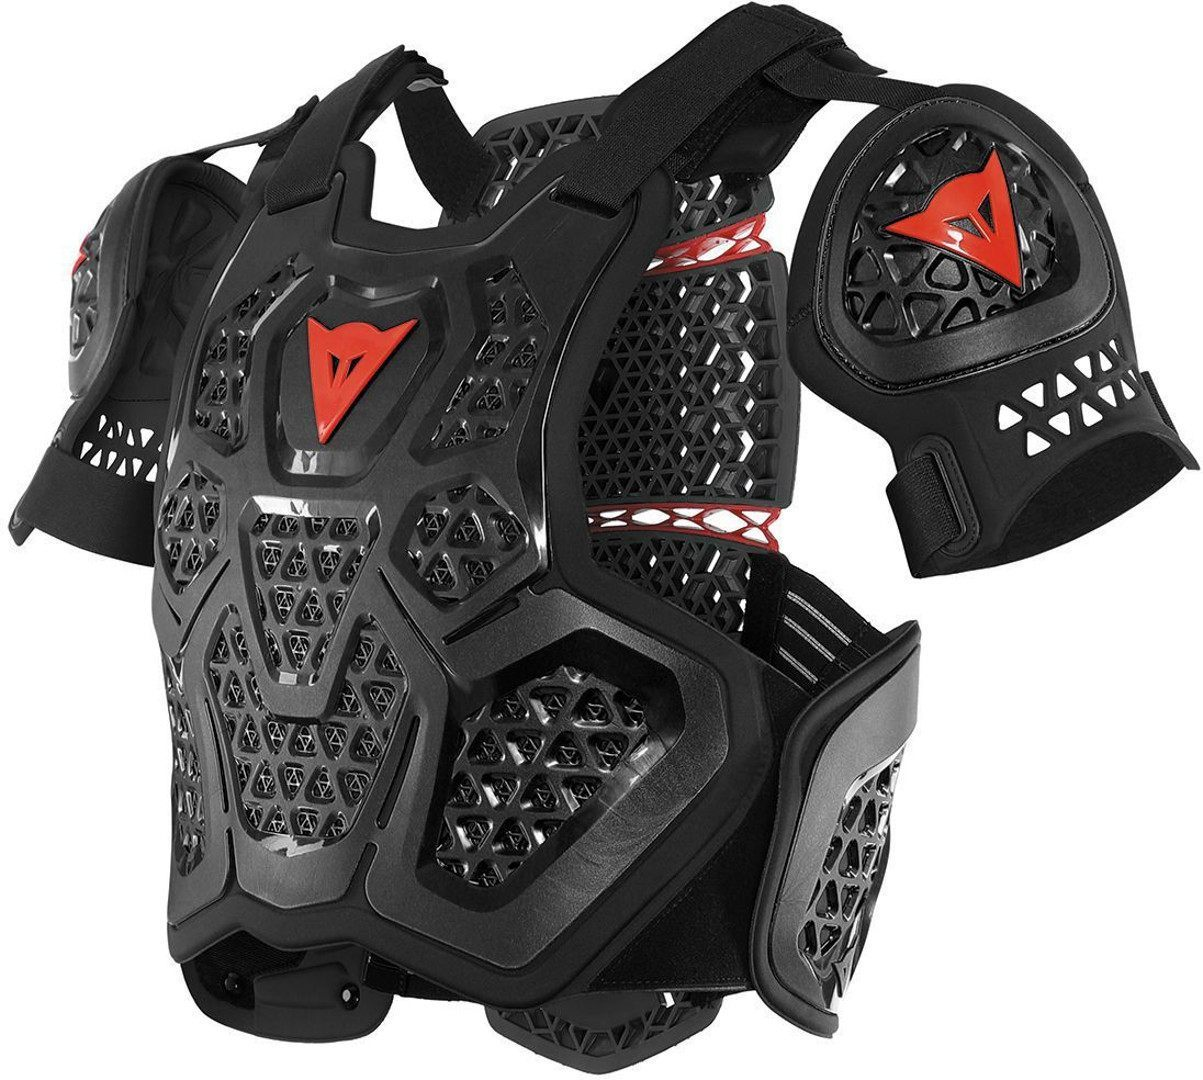 Dainese Dainese MX1 Roost Guard Protektorenweste, schwarz, Größe 2XS XS S M, schwarz, Größe 2XS XS S M